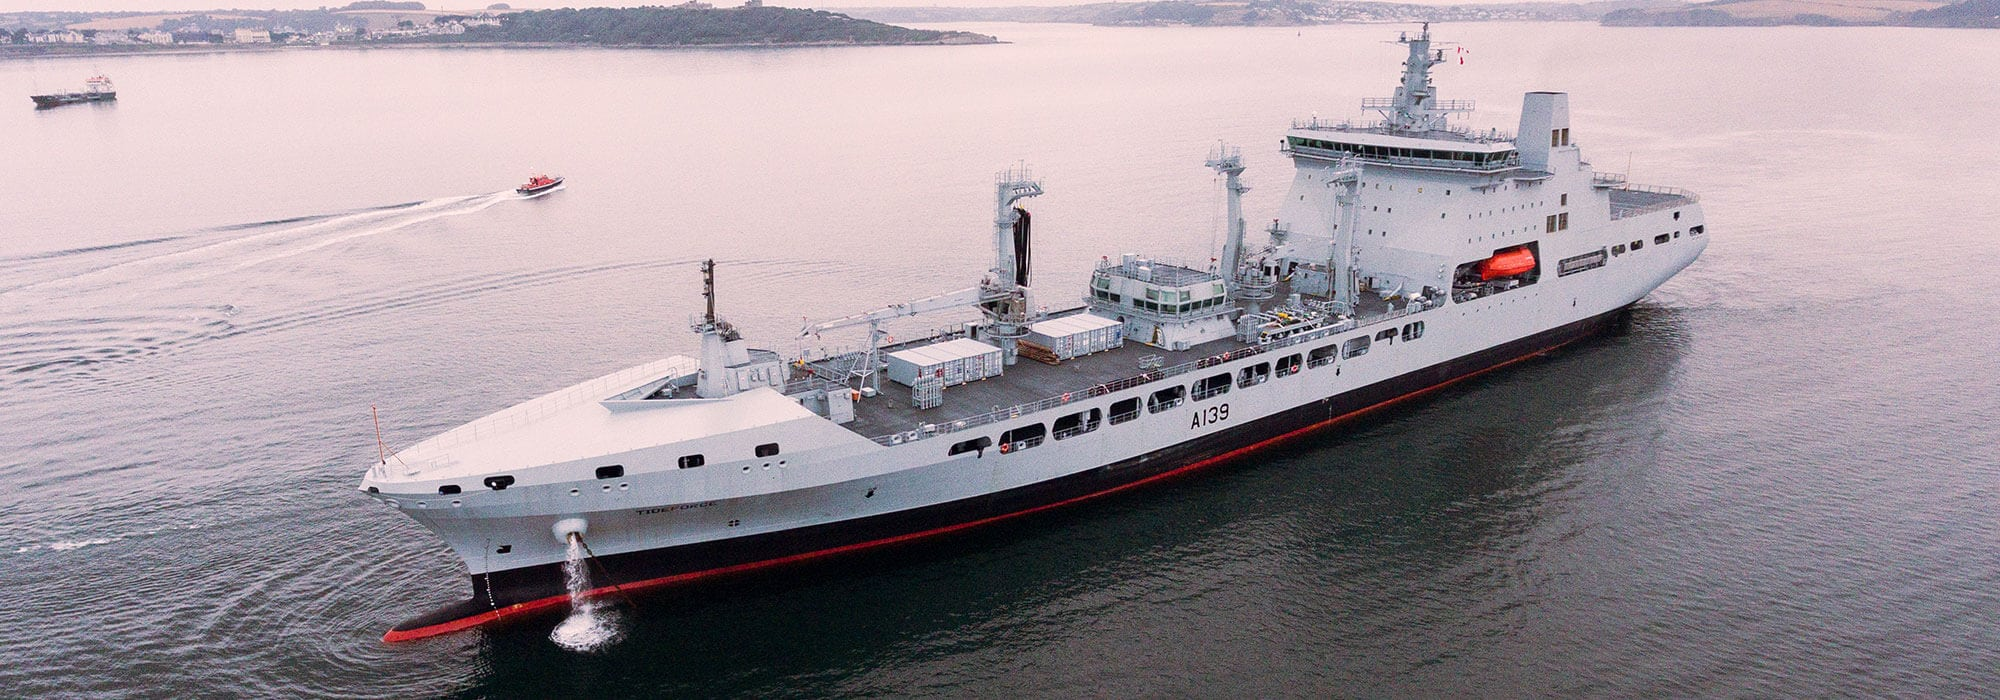 Tideforce the fourth Tide class tanker arrives in UK